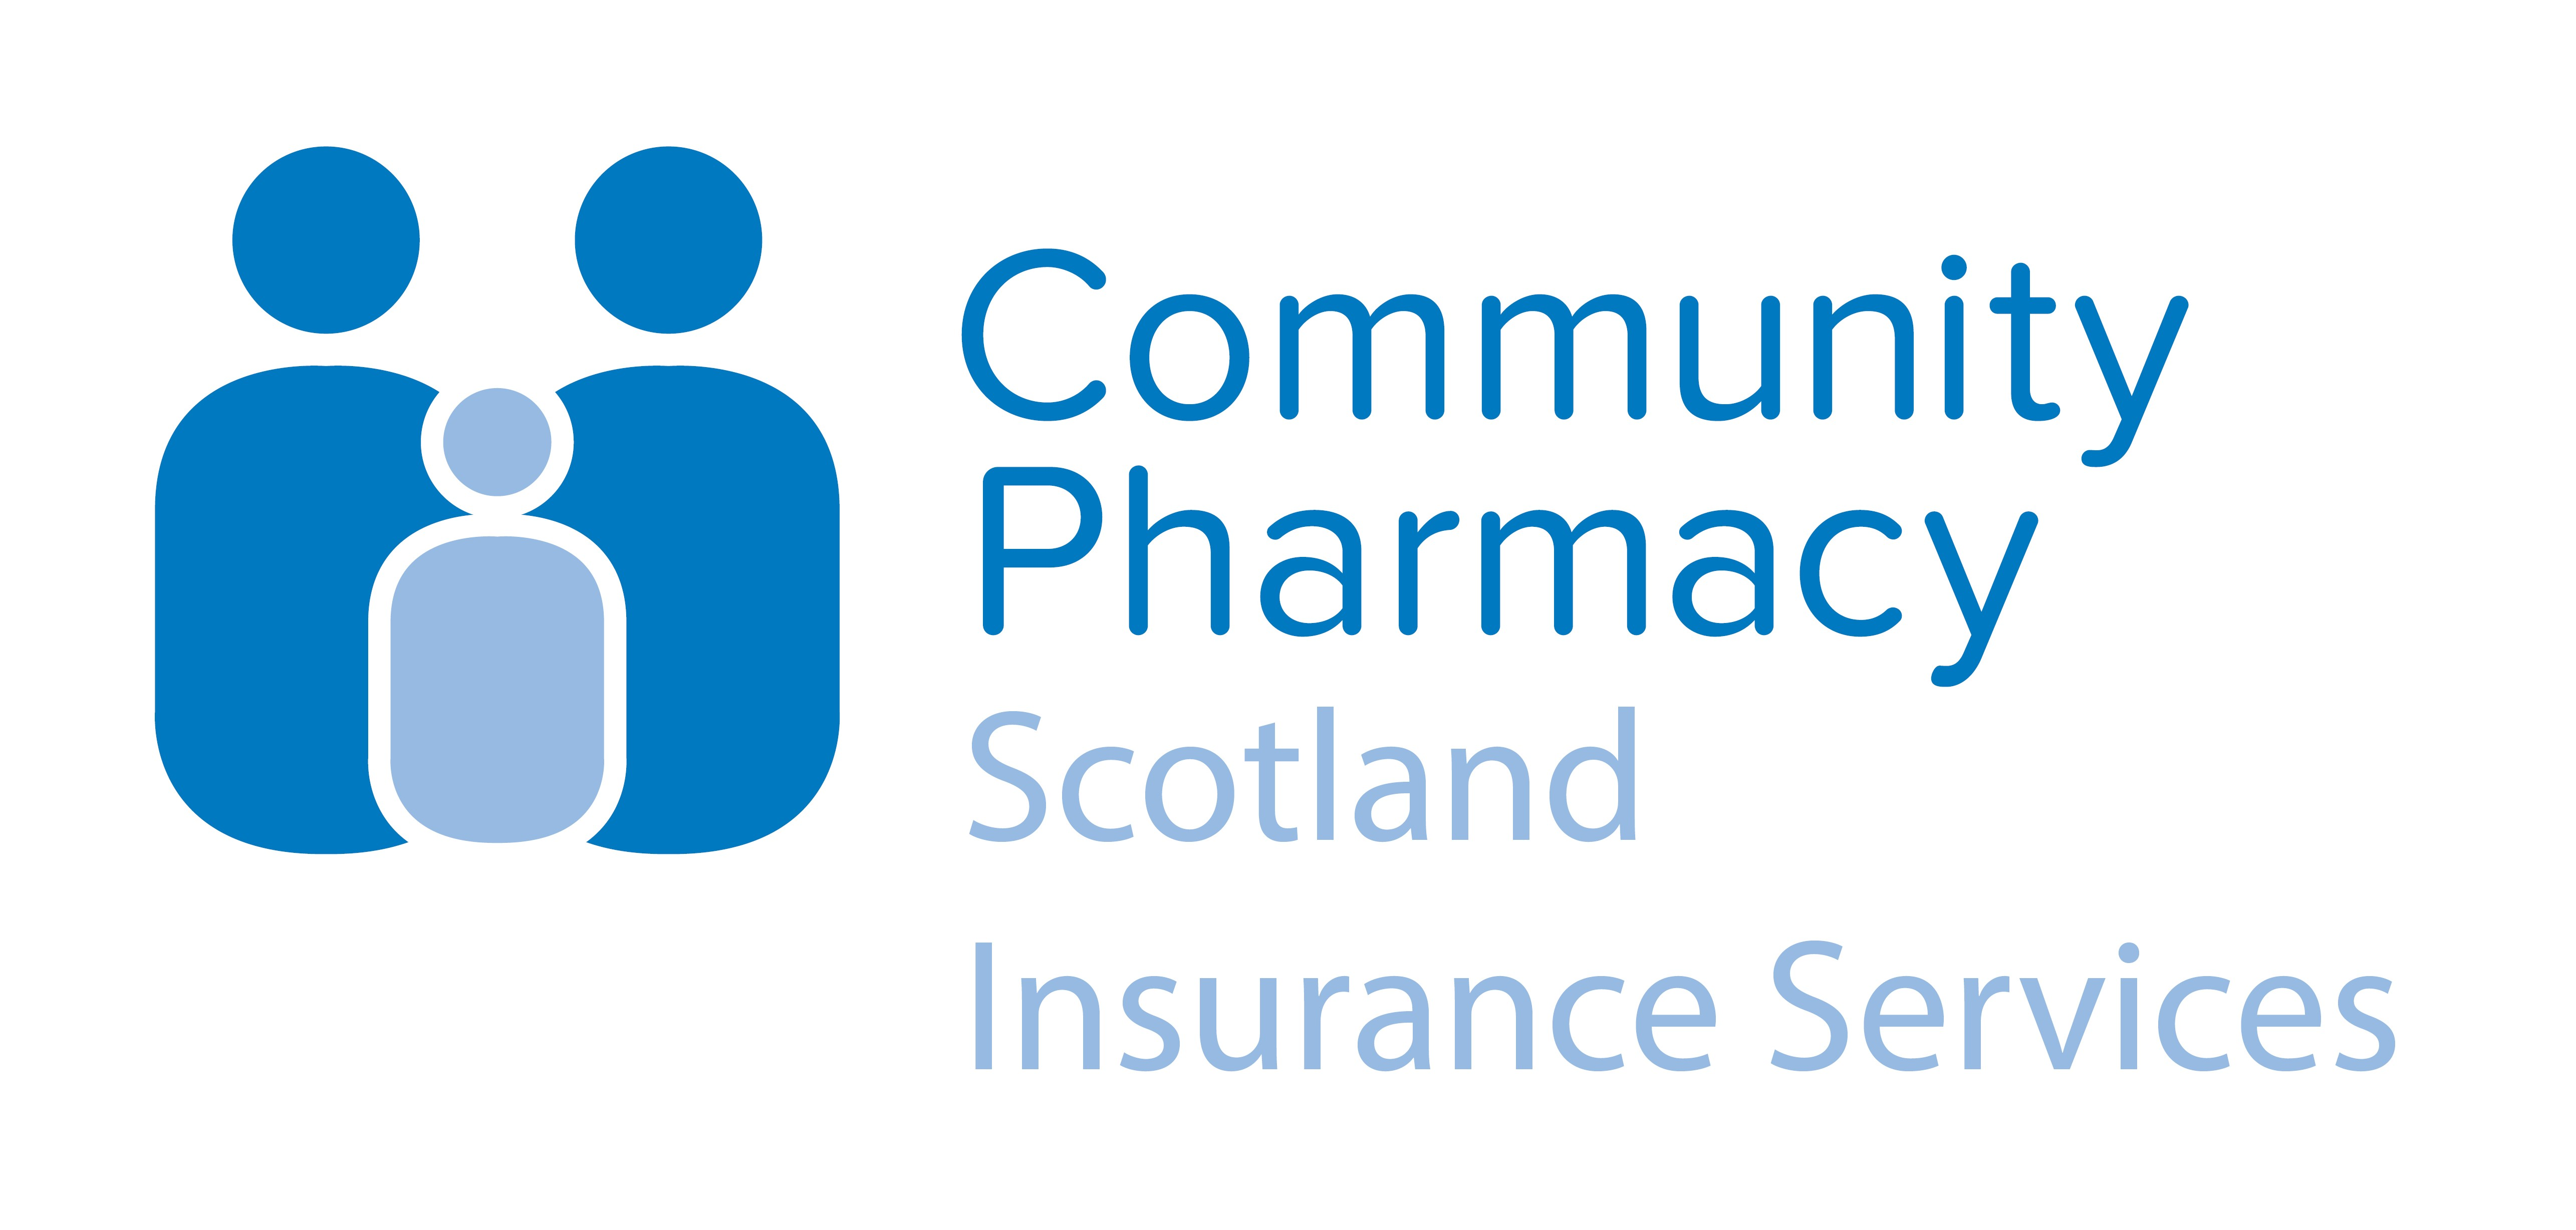 Community Pharmacy Scotland Insurance Services